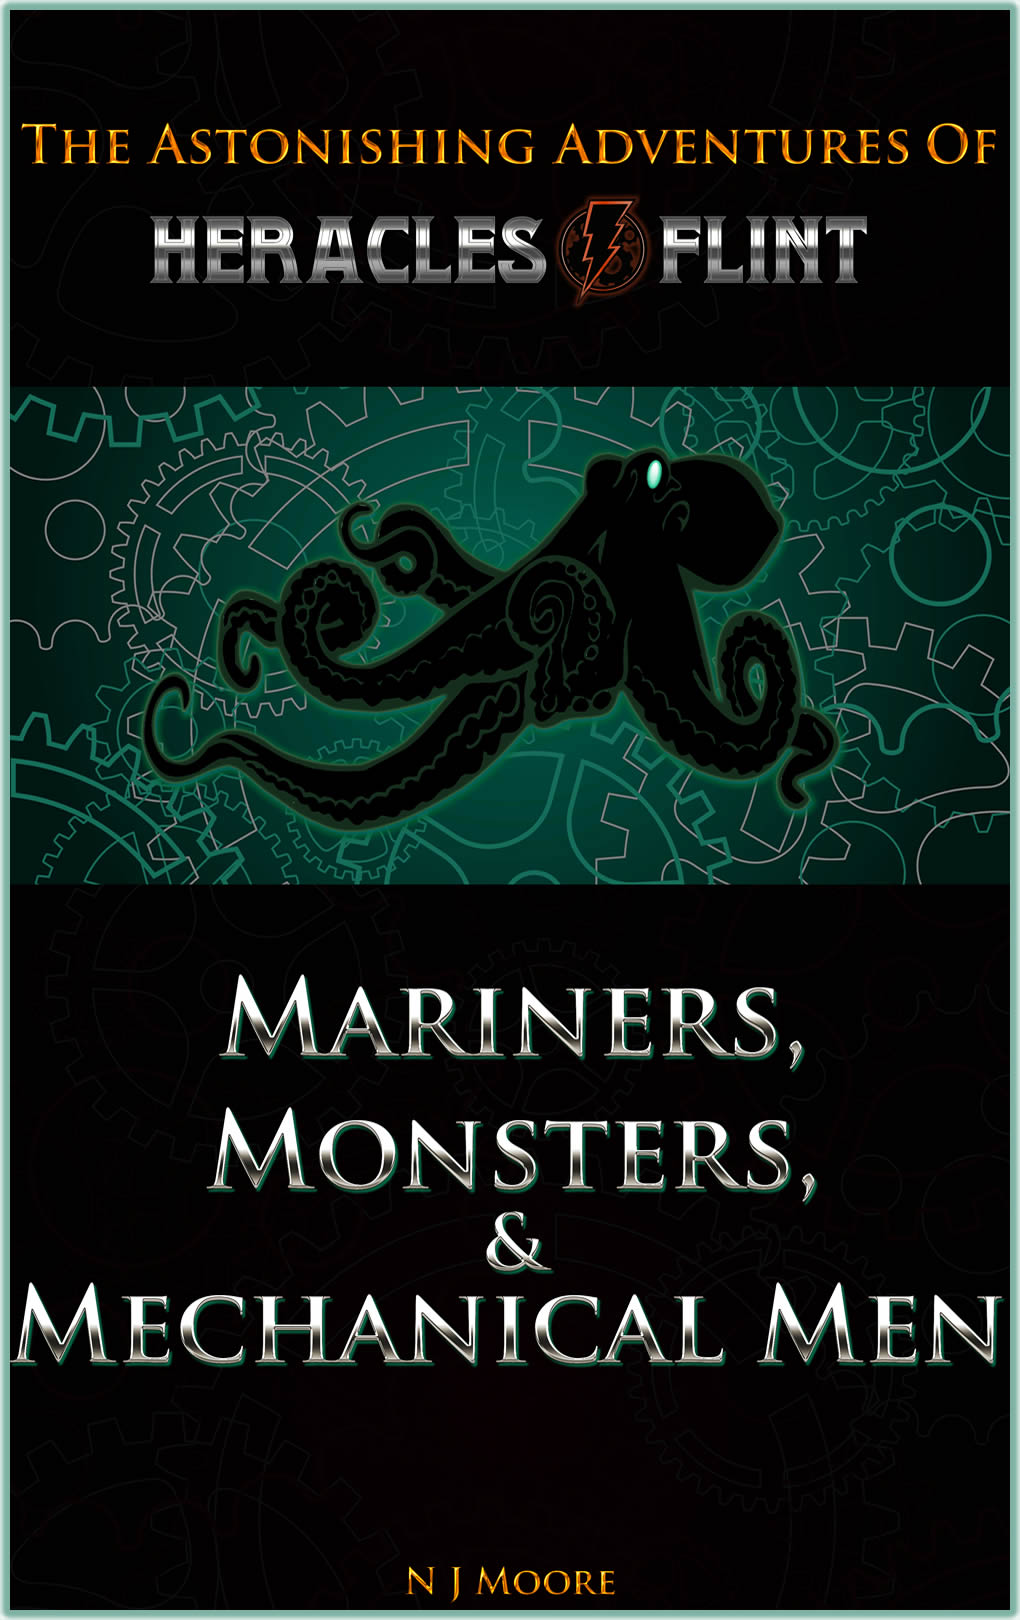 Mariners, Monsters, & Mechanical Men